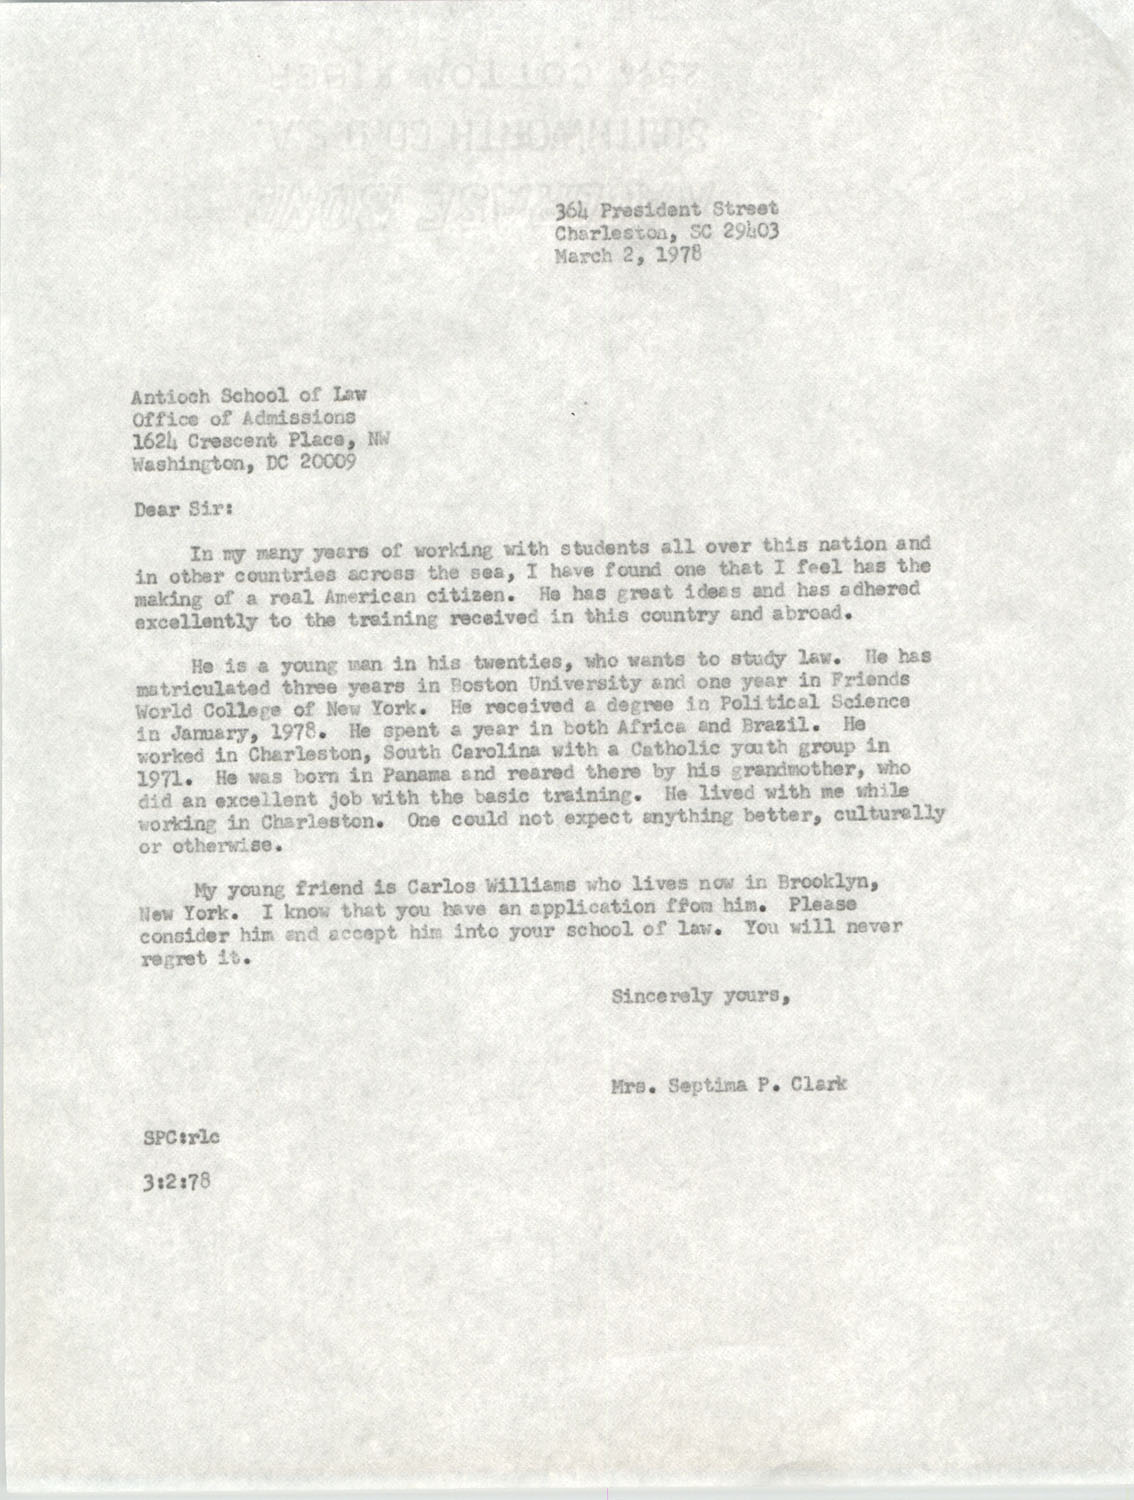 Letter from Antioch School of Law to Septima P. Clark, March 2, 1978